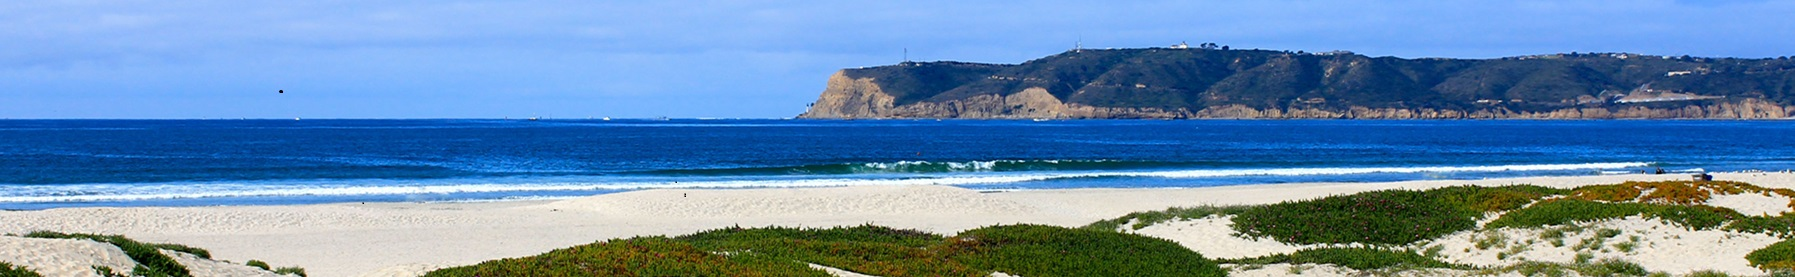 San_Diego_Point_Loma_Ocean_Beach_Banner2